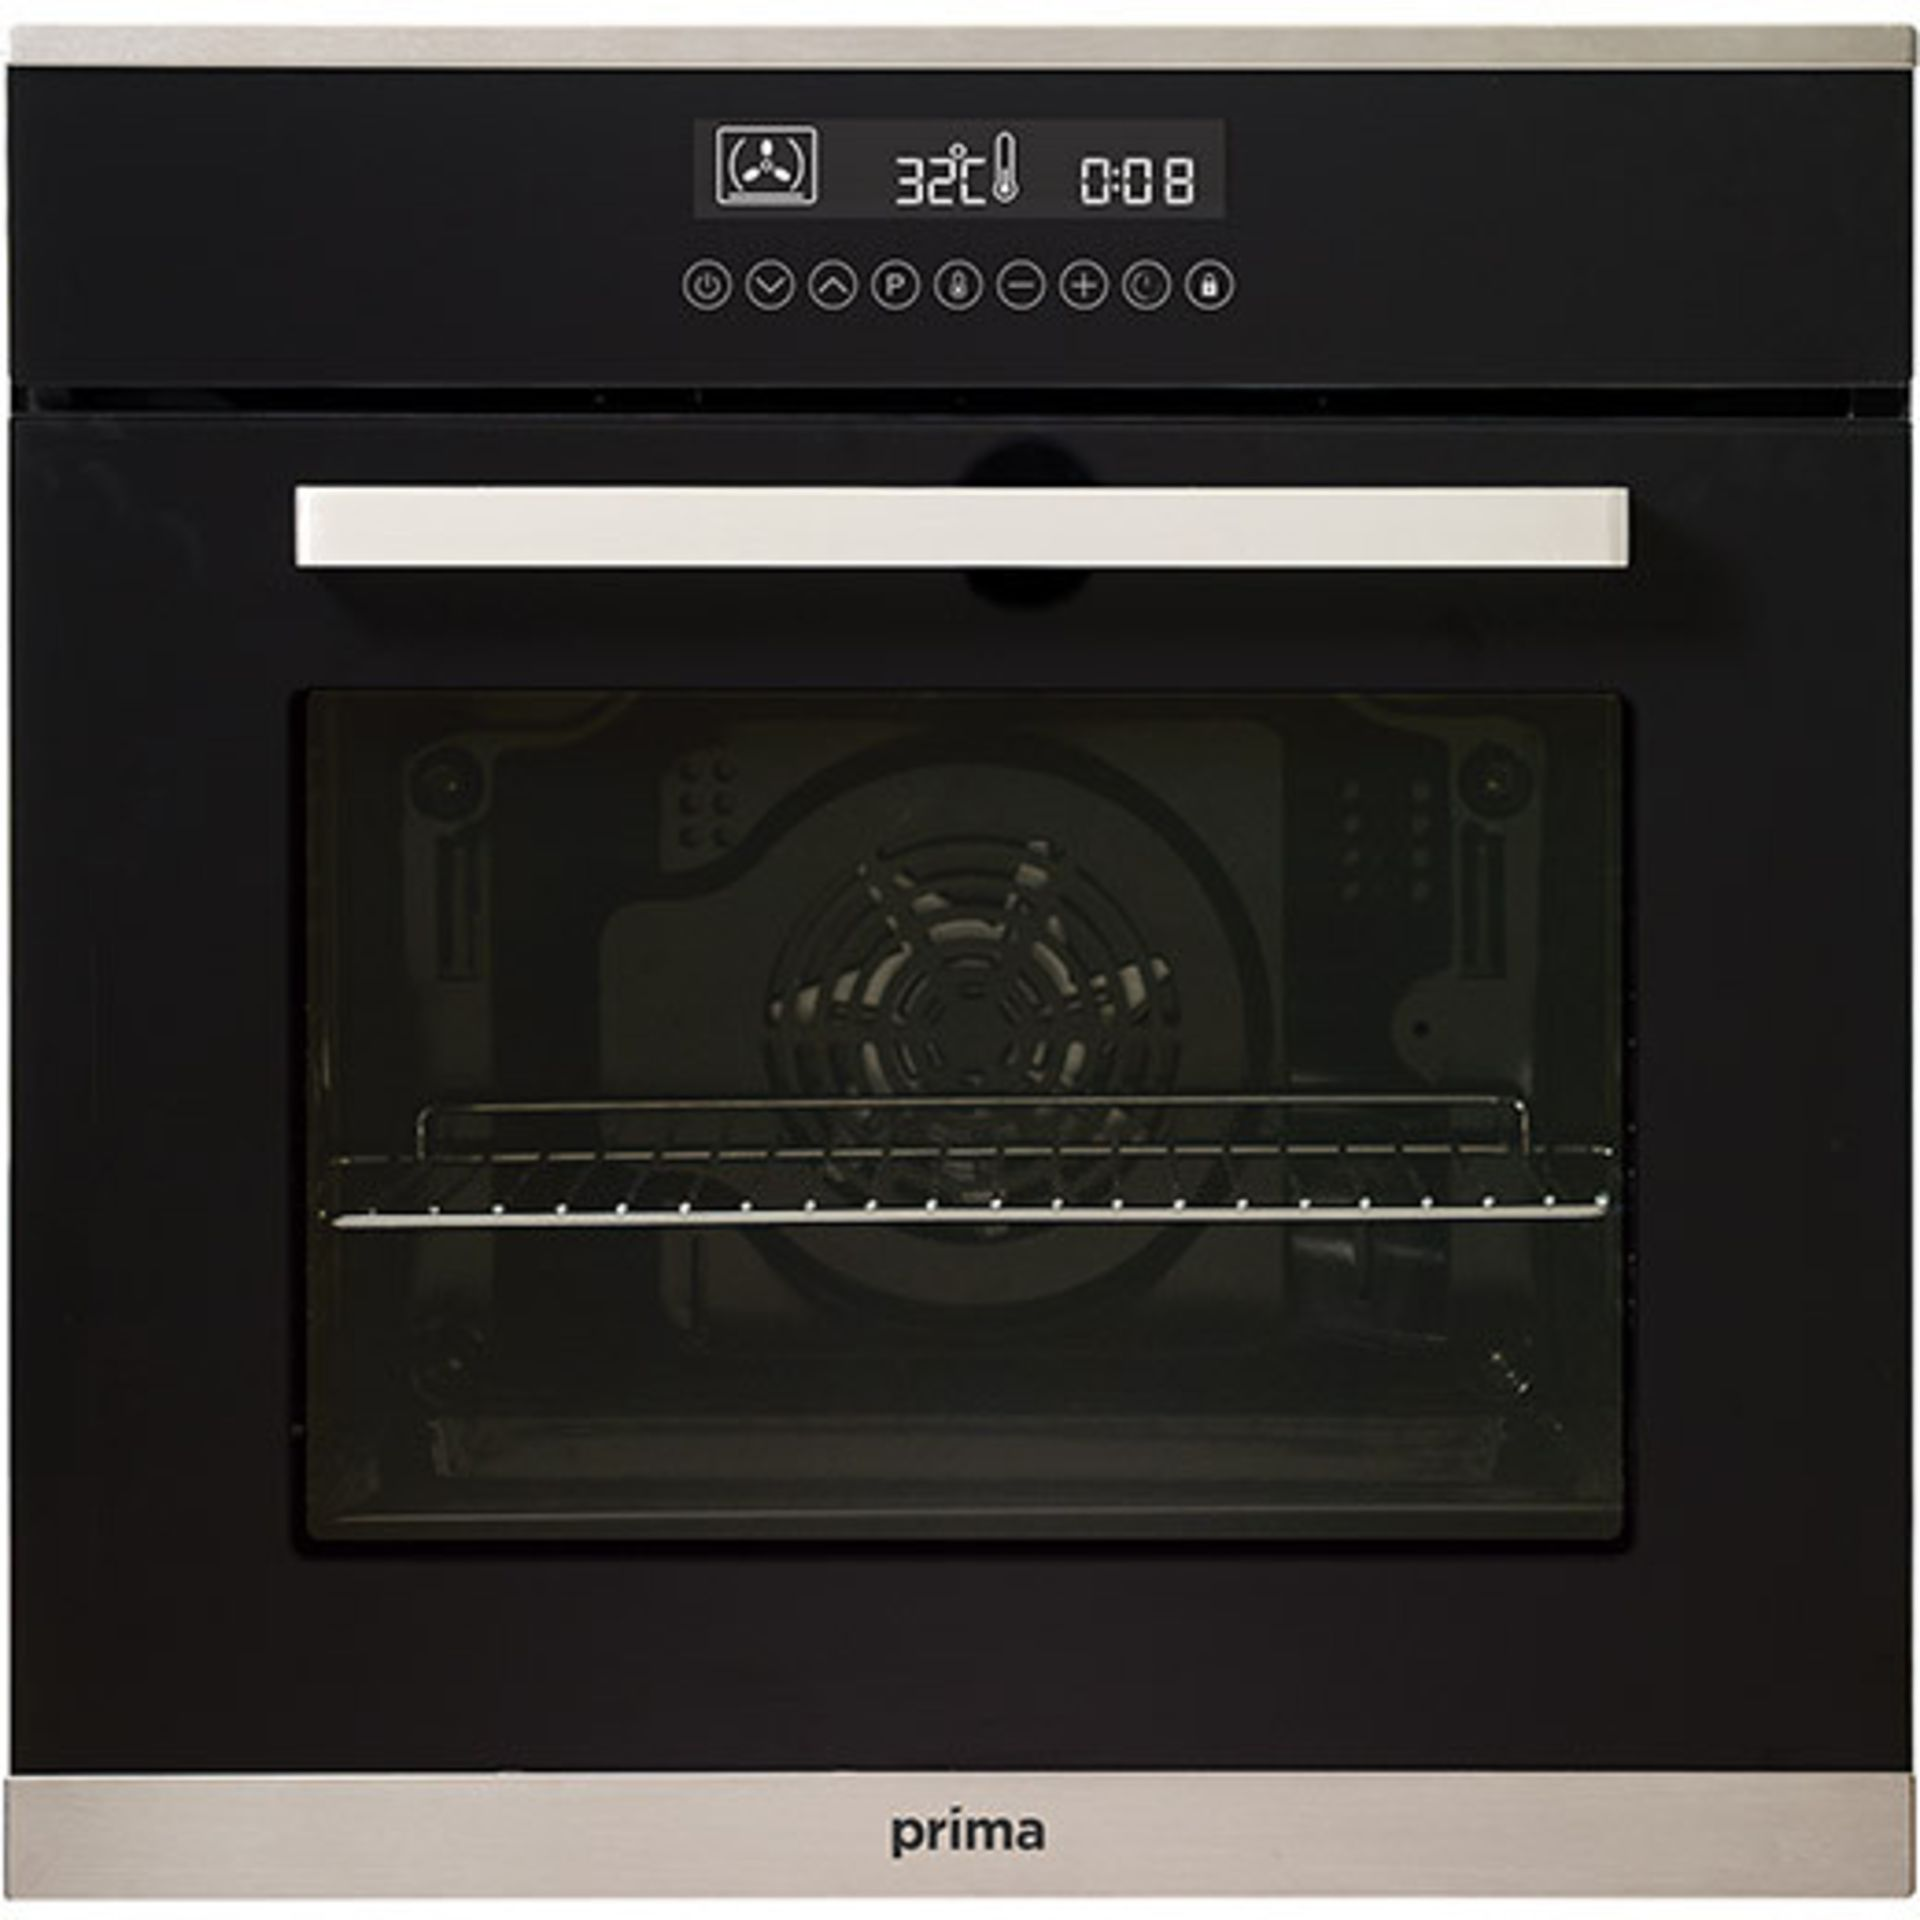 (KA43) PRIMA+ BUILT-IN SINGLE ELECTRIC OVEN - PRSO108 RRP £366.35 (SLIGHT DINT TO BACK) 76 L...